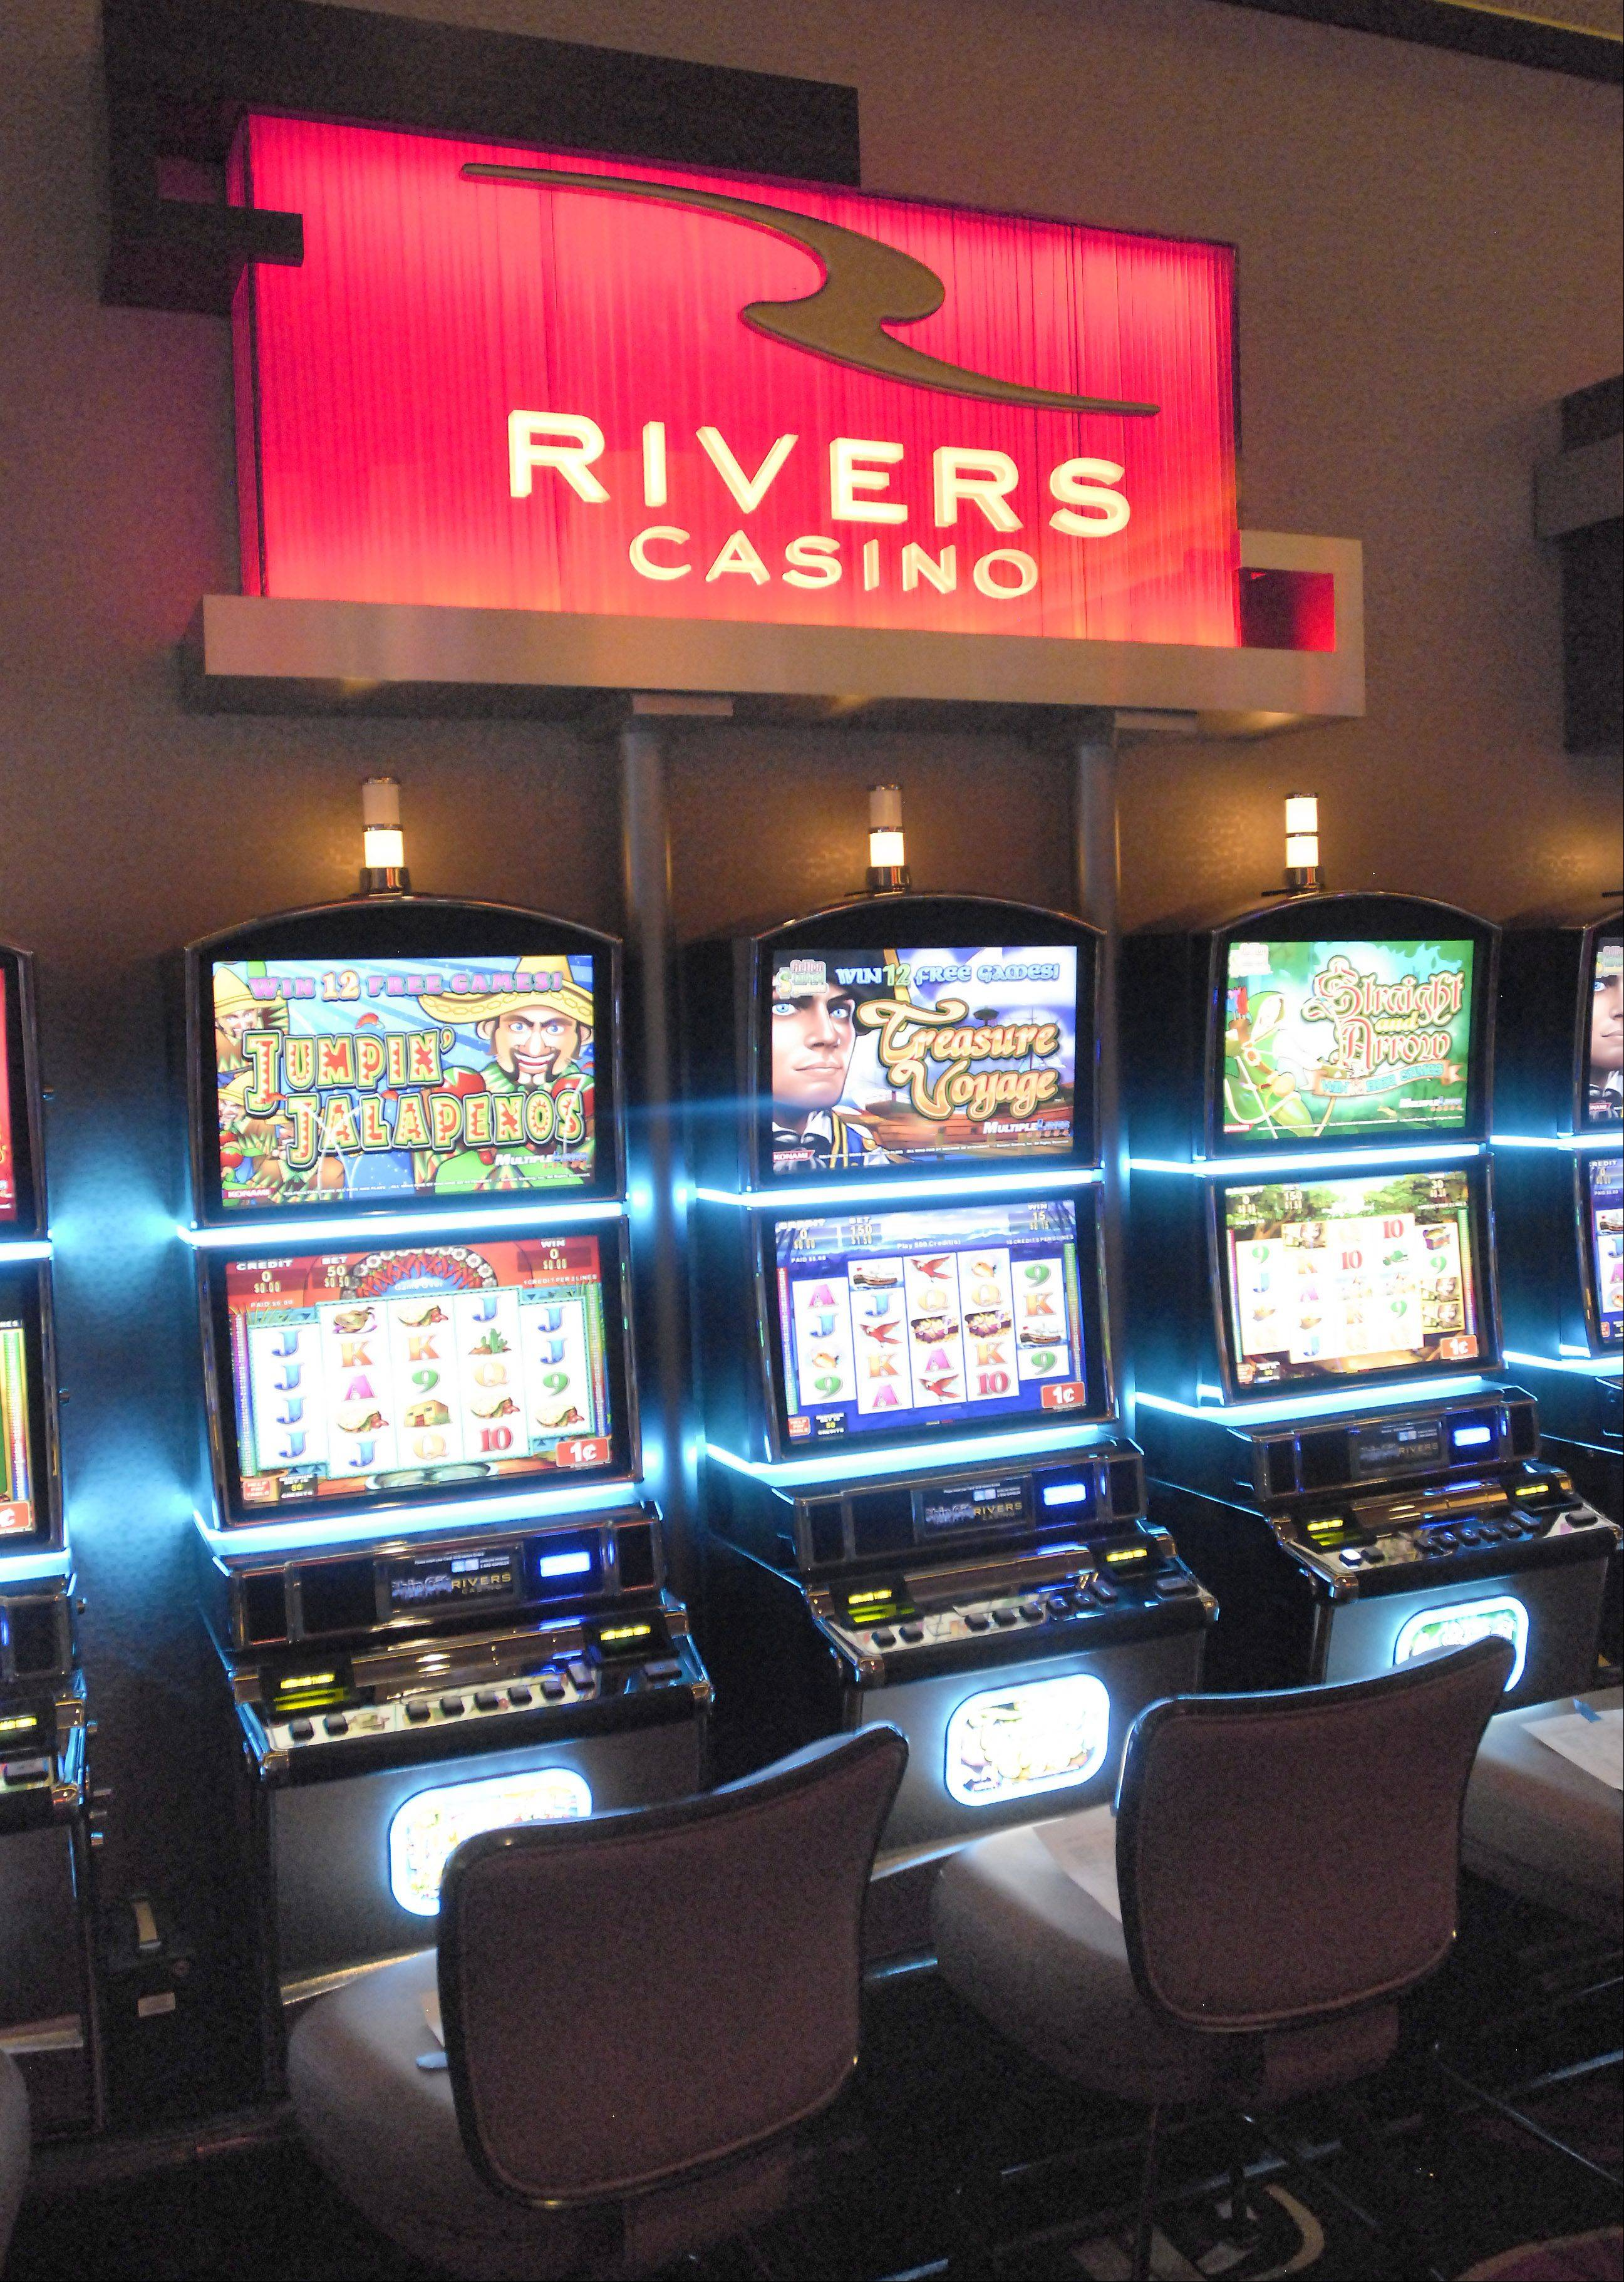 Bill Zars/bzars@dailyherald.com 2011 The Des Plaines City Council this week adopted a policy limiting use of revenue from the Rivers Casino mainly to infrastructure projects, such as flood control, and paying down municipal debt.